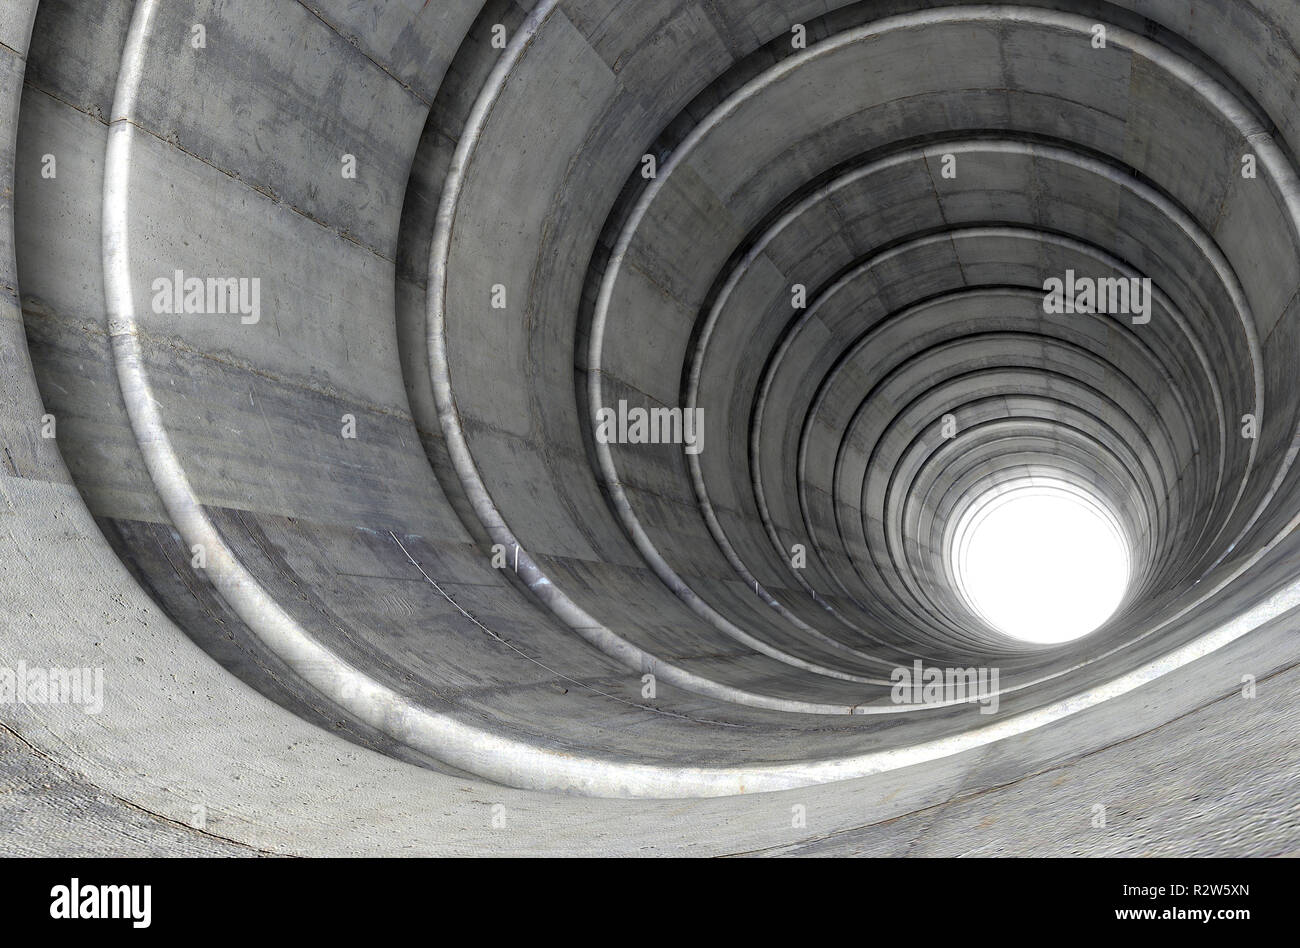 A look down a concrete tunnel made out of circular geometric shapes with a light in the distance at the far end - 3D render Stock Photo